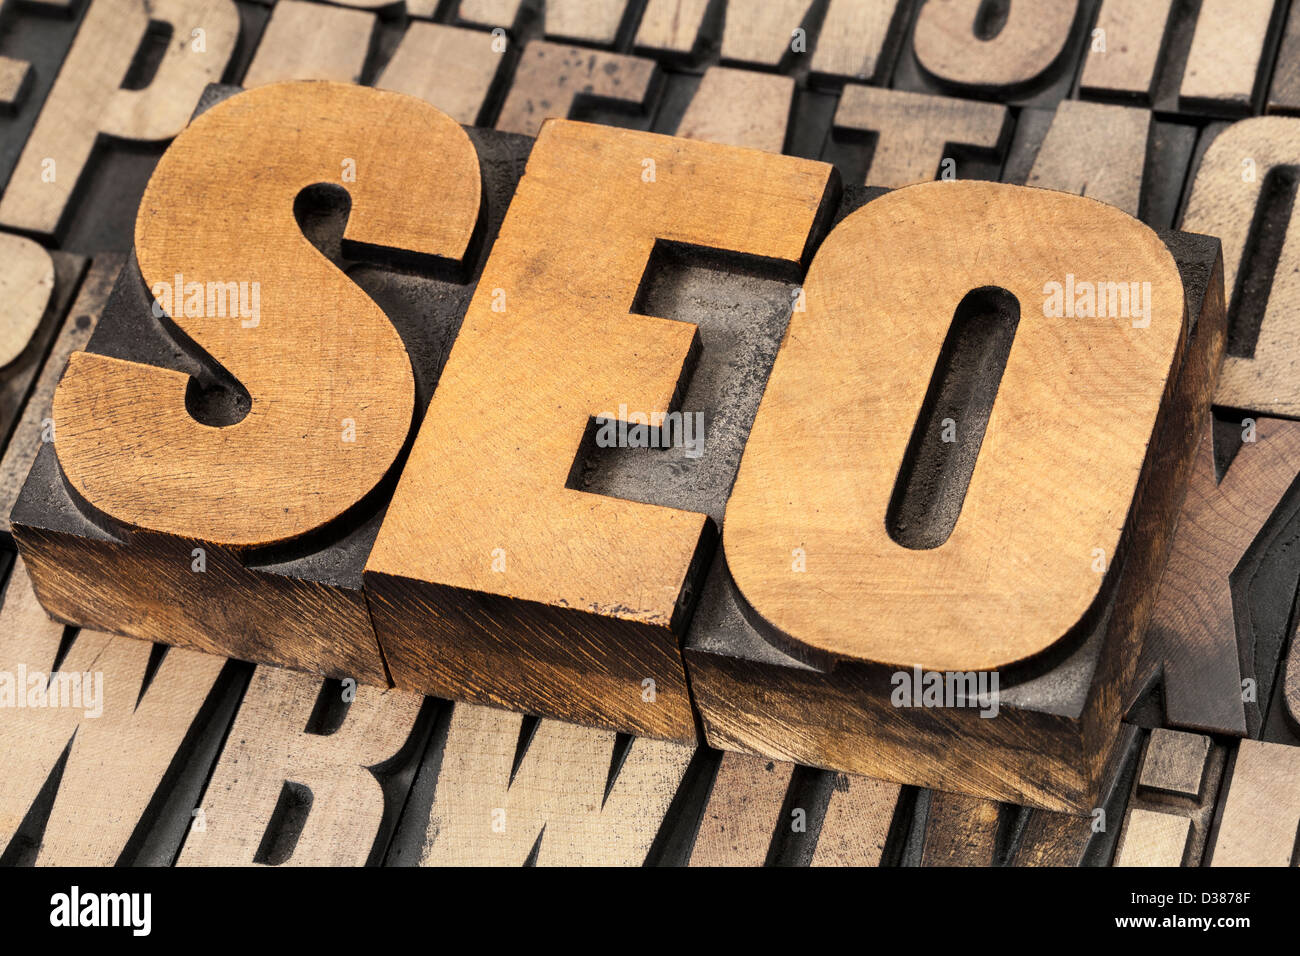 SEO (search engine optimization) acronym - text in vintage letterpress wood type - Stock Image